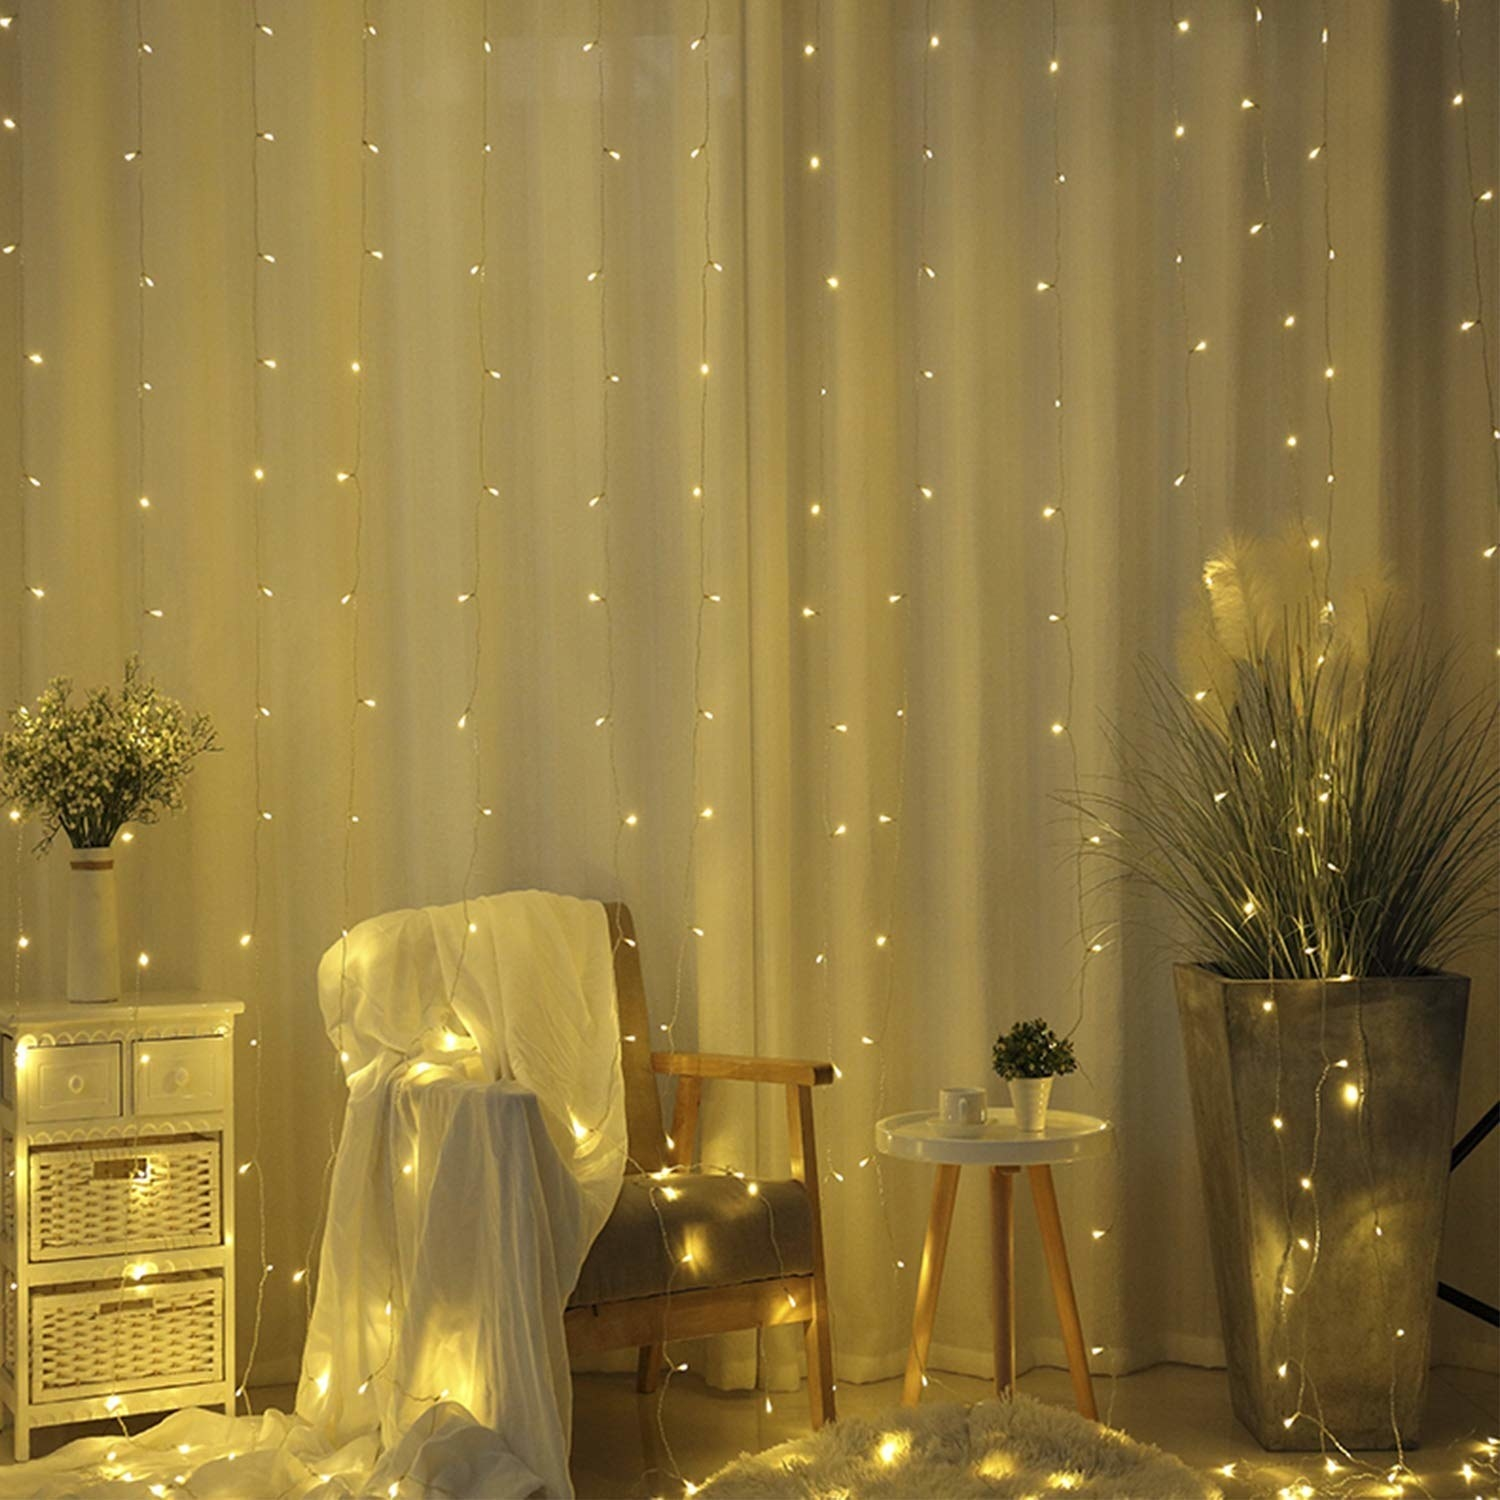 String lights draped over curtains, and various other furniture and decor items such as a chair, side tables, and a plant.